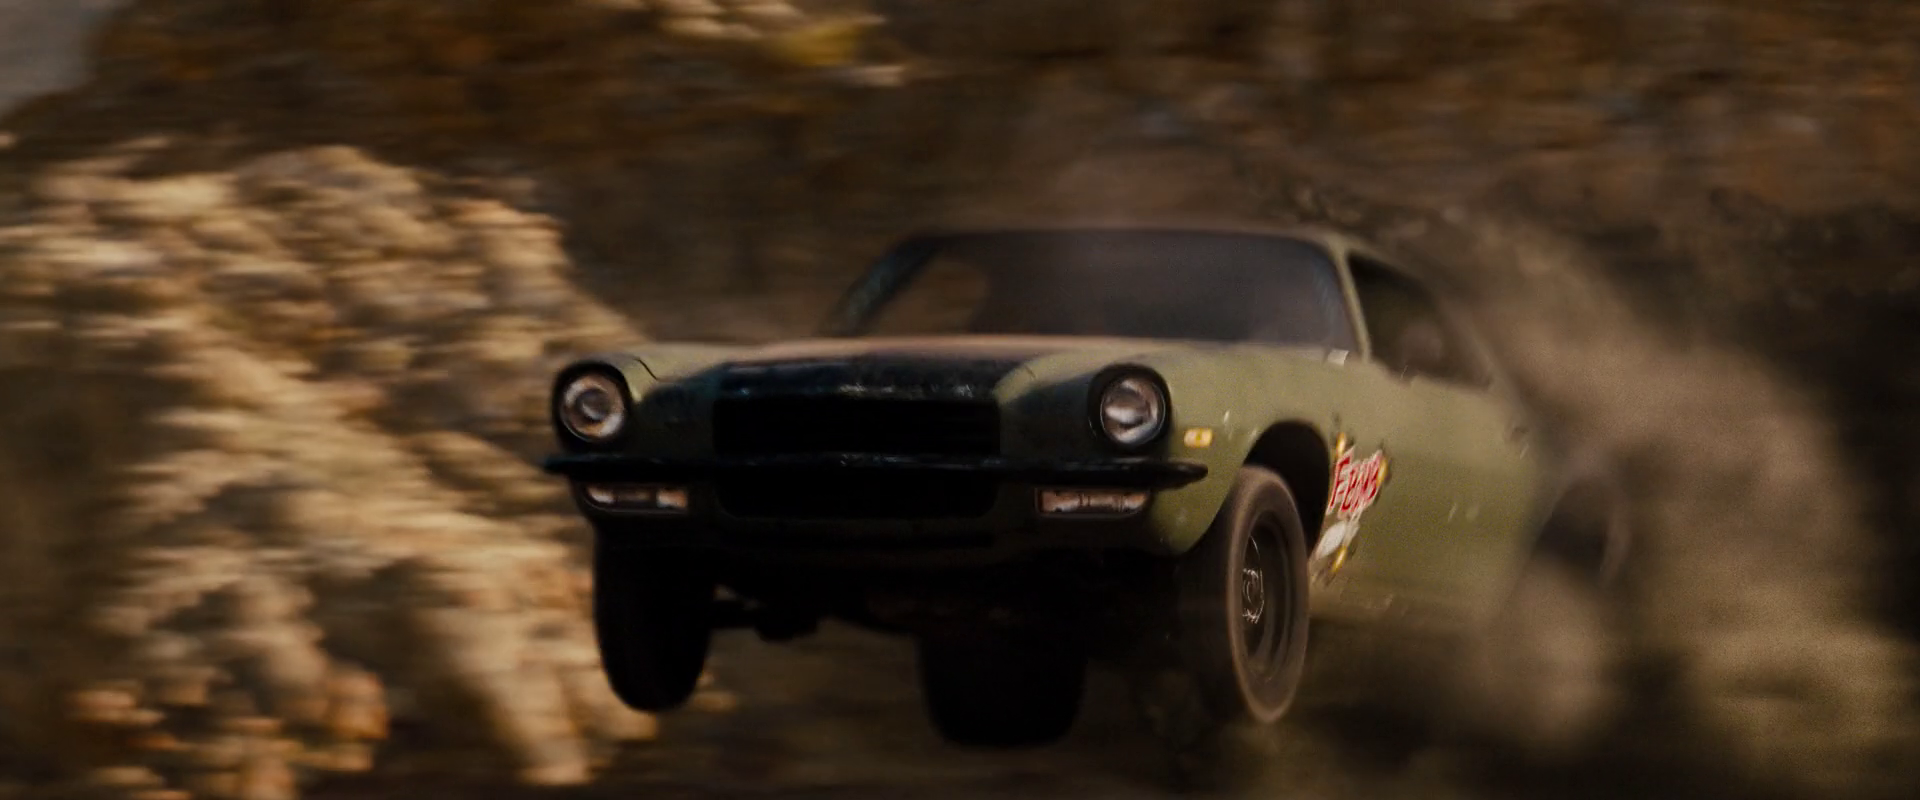 1973 Chevrolet Camaro RS-Z28 F-Bomb | The Fast and the